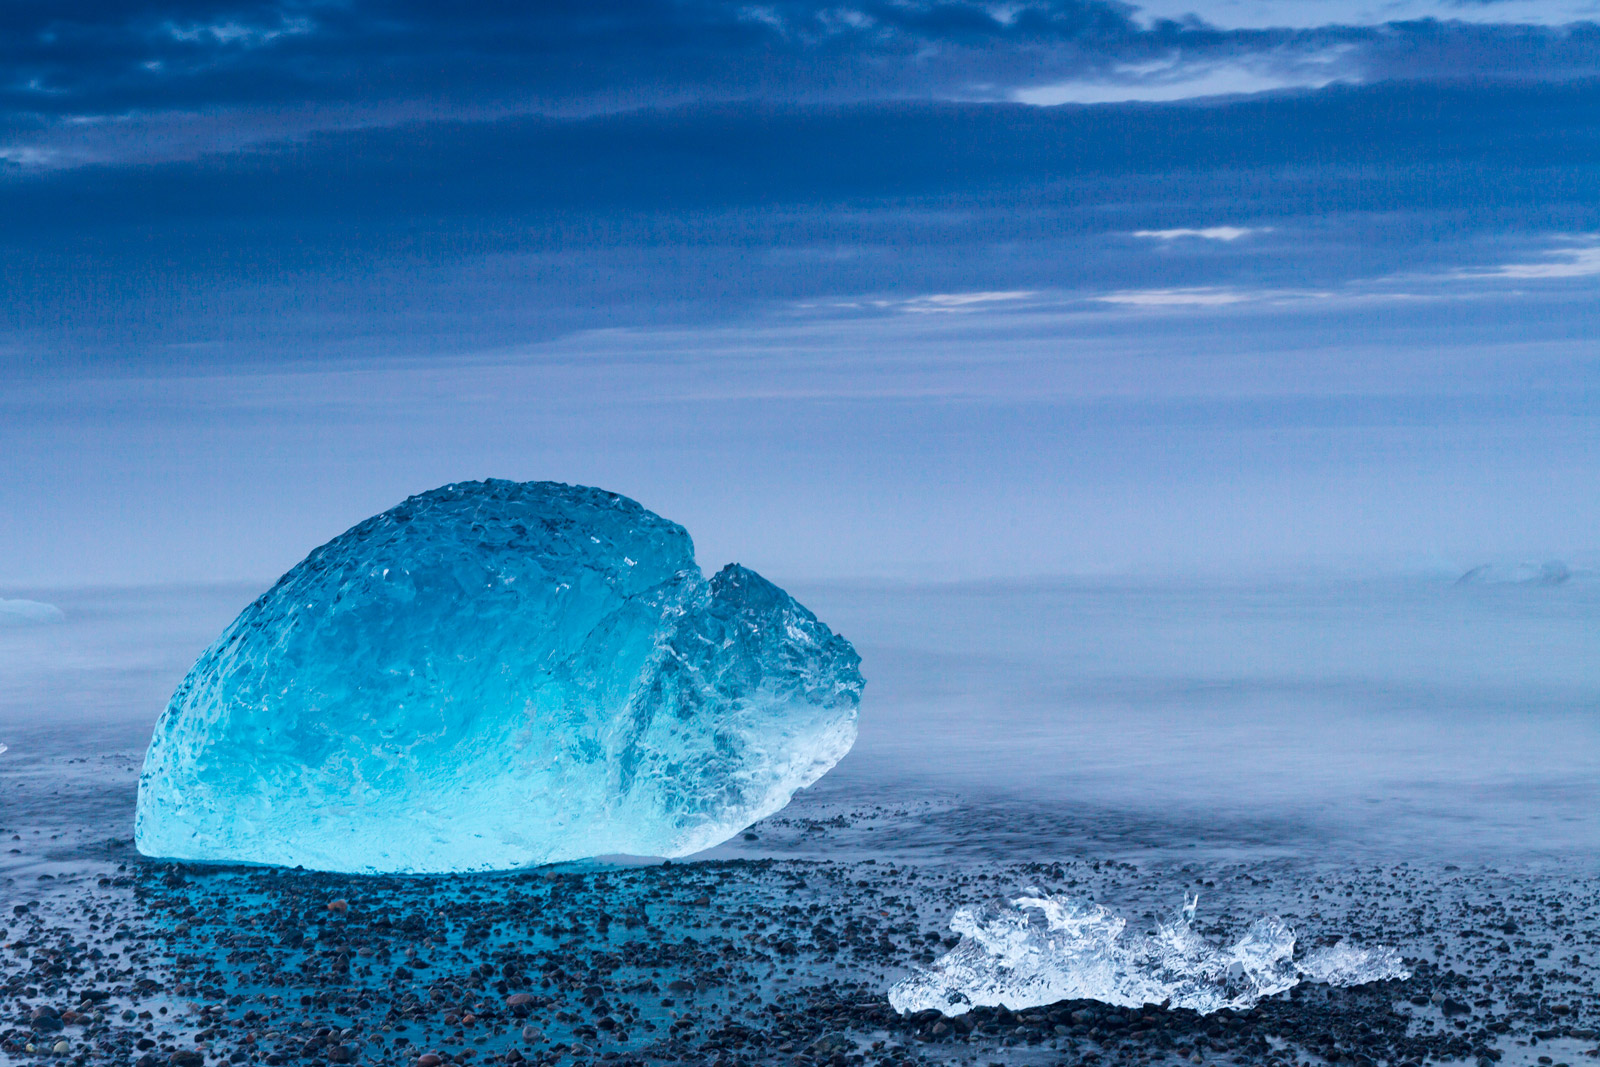 iceland, iceberg, jokulsarlon, lagoon, limited edition, photograph, fine art, landscape, photo